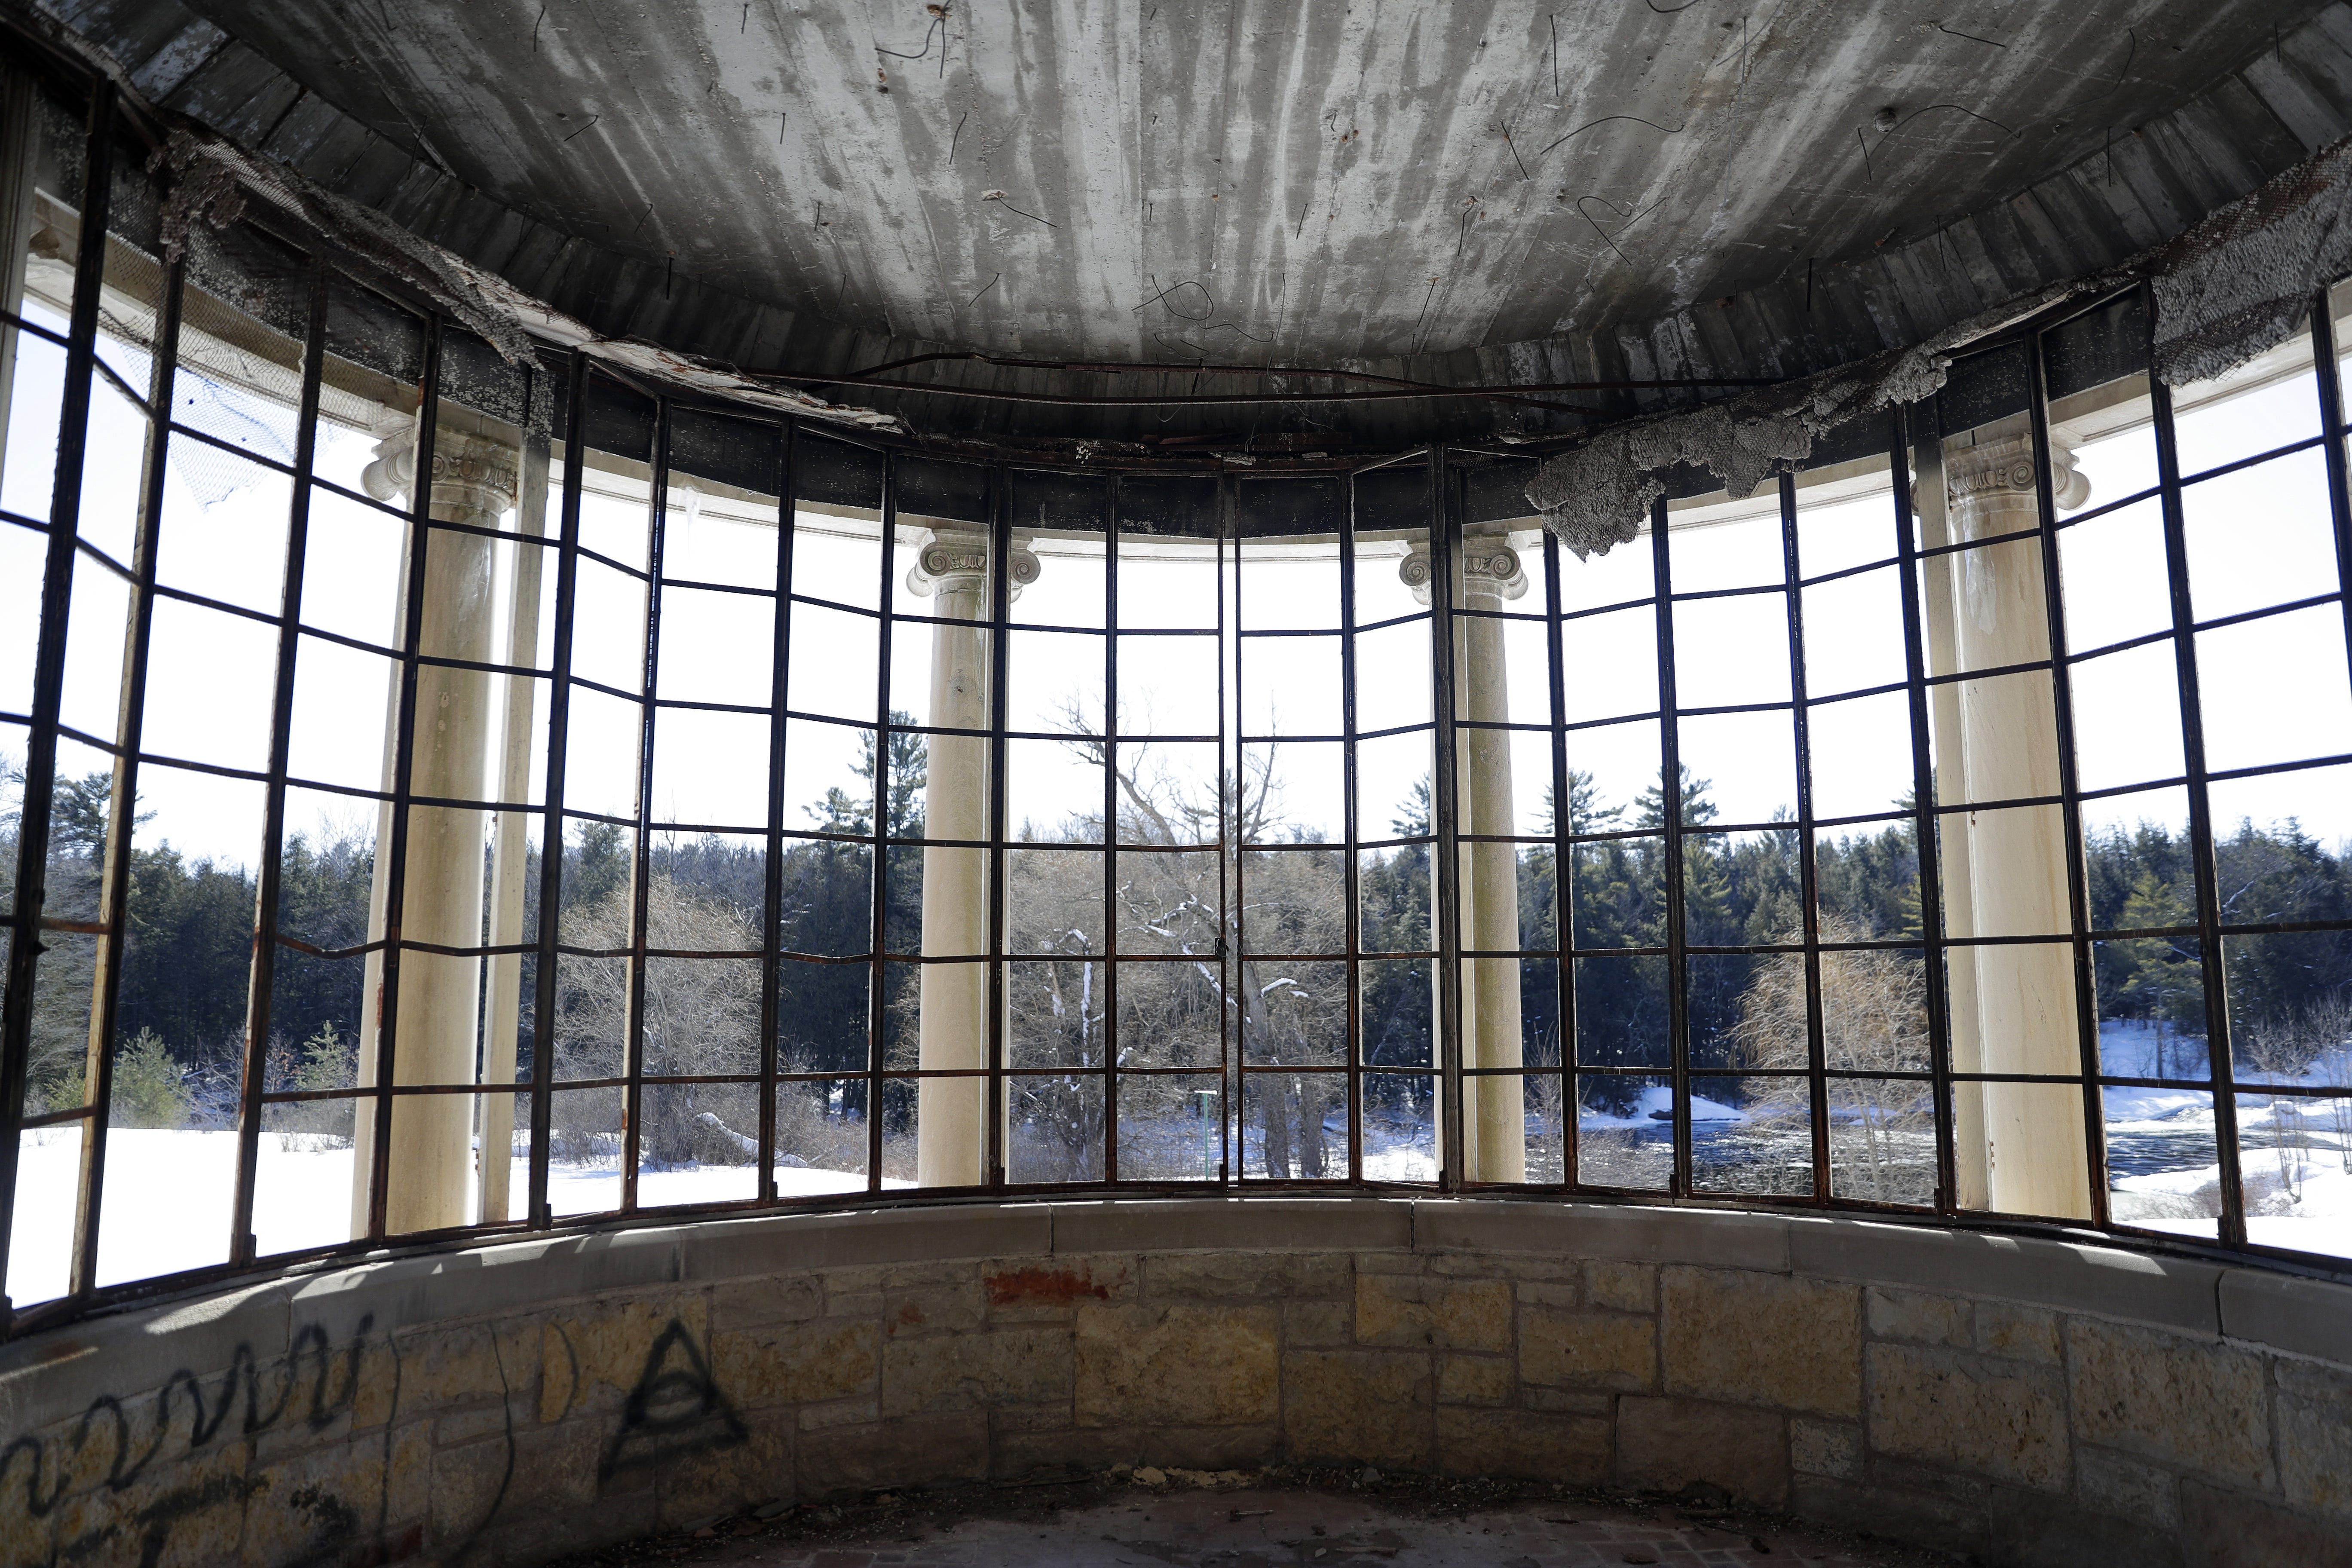 Windows without any glass in the former conservatory room of a 25,000-square-foot limestone mansion overlook the former grounds of the former Alexian Brothers Novitiate in Gresham.